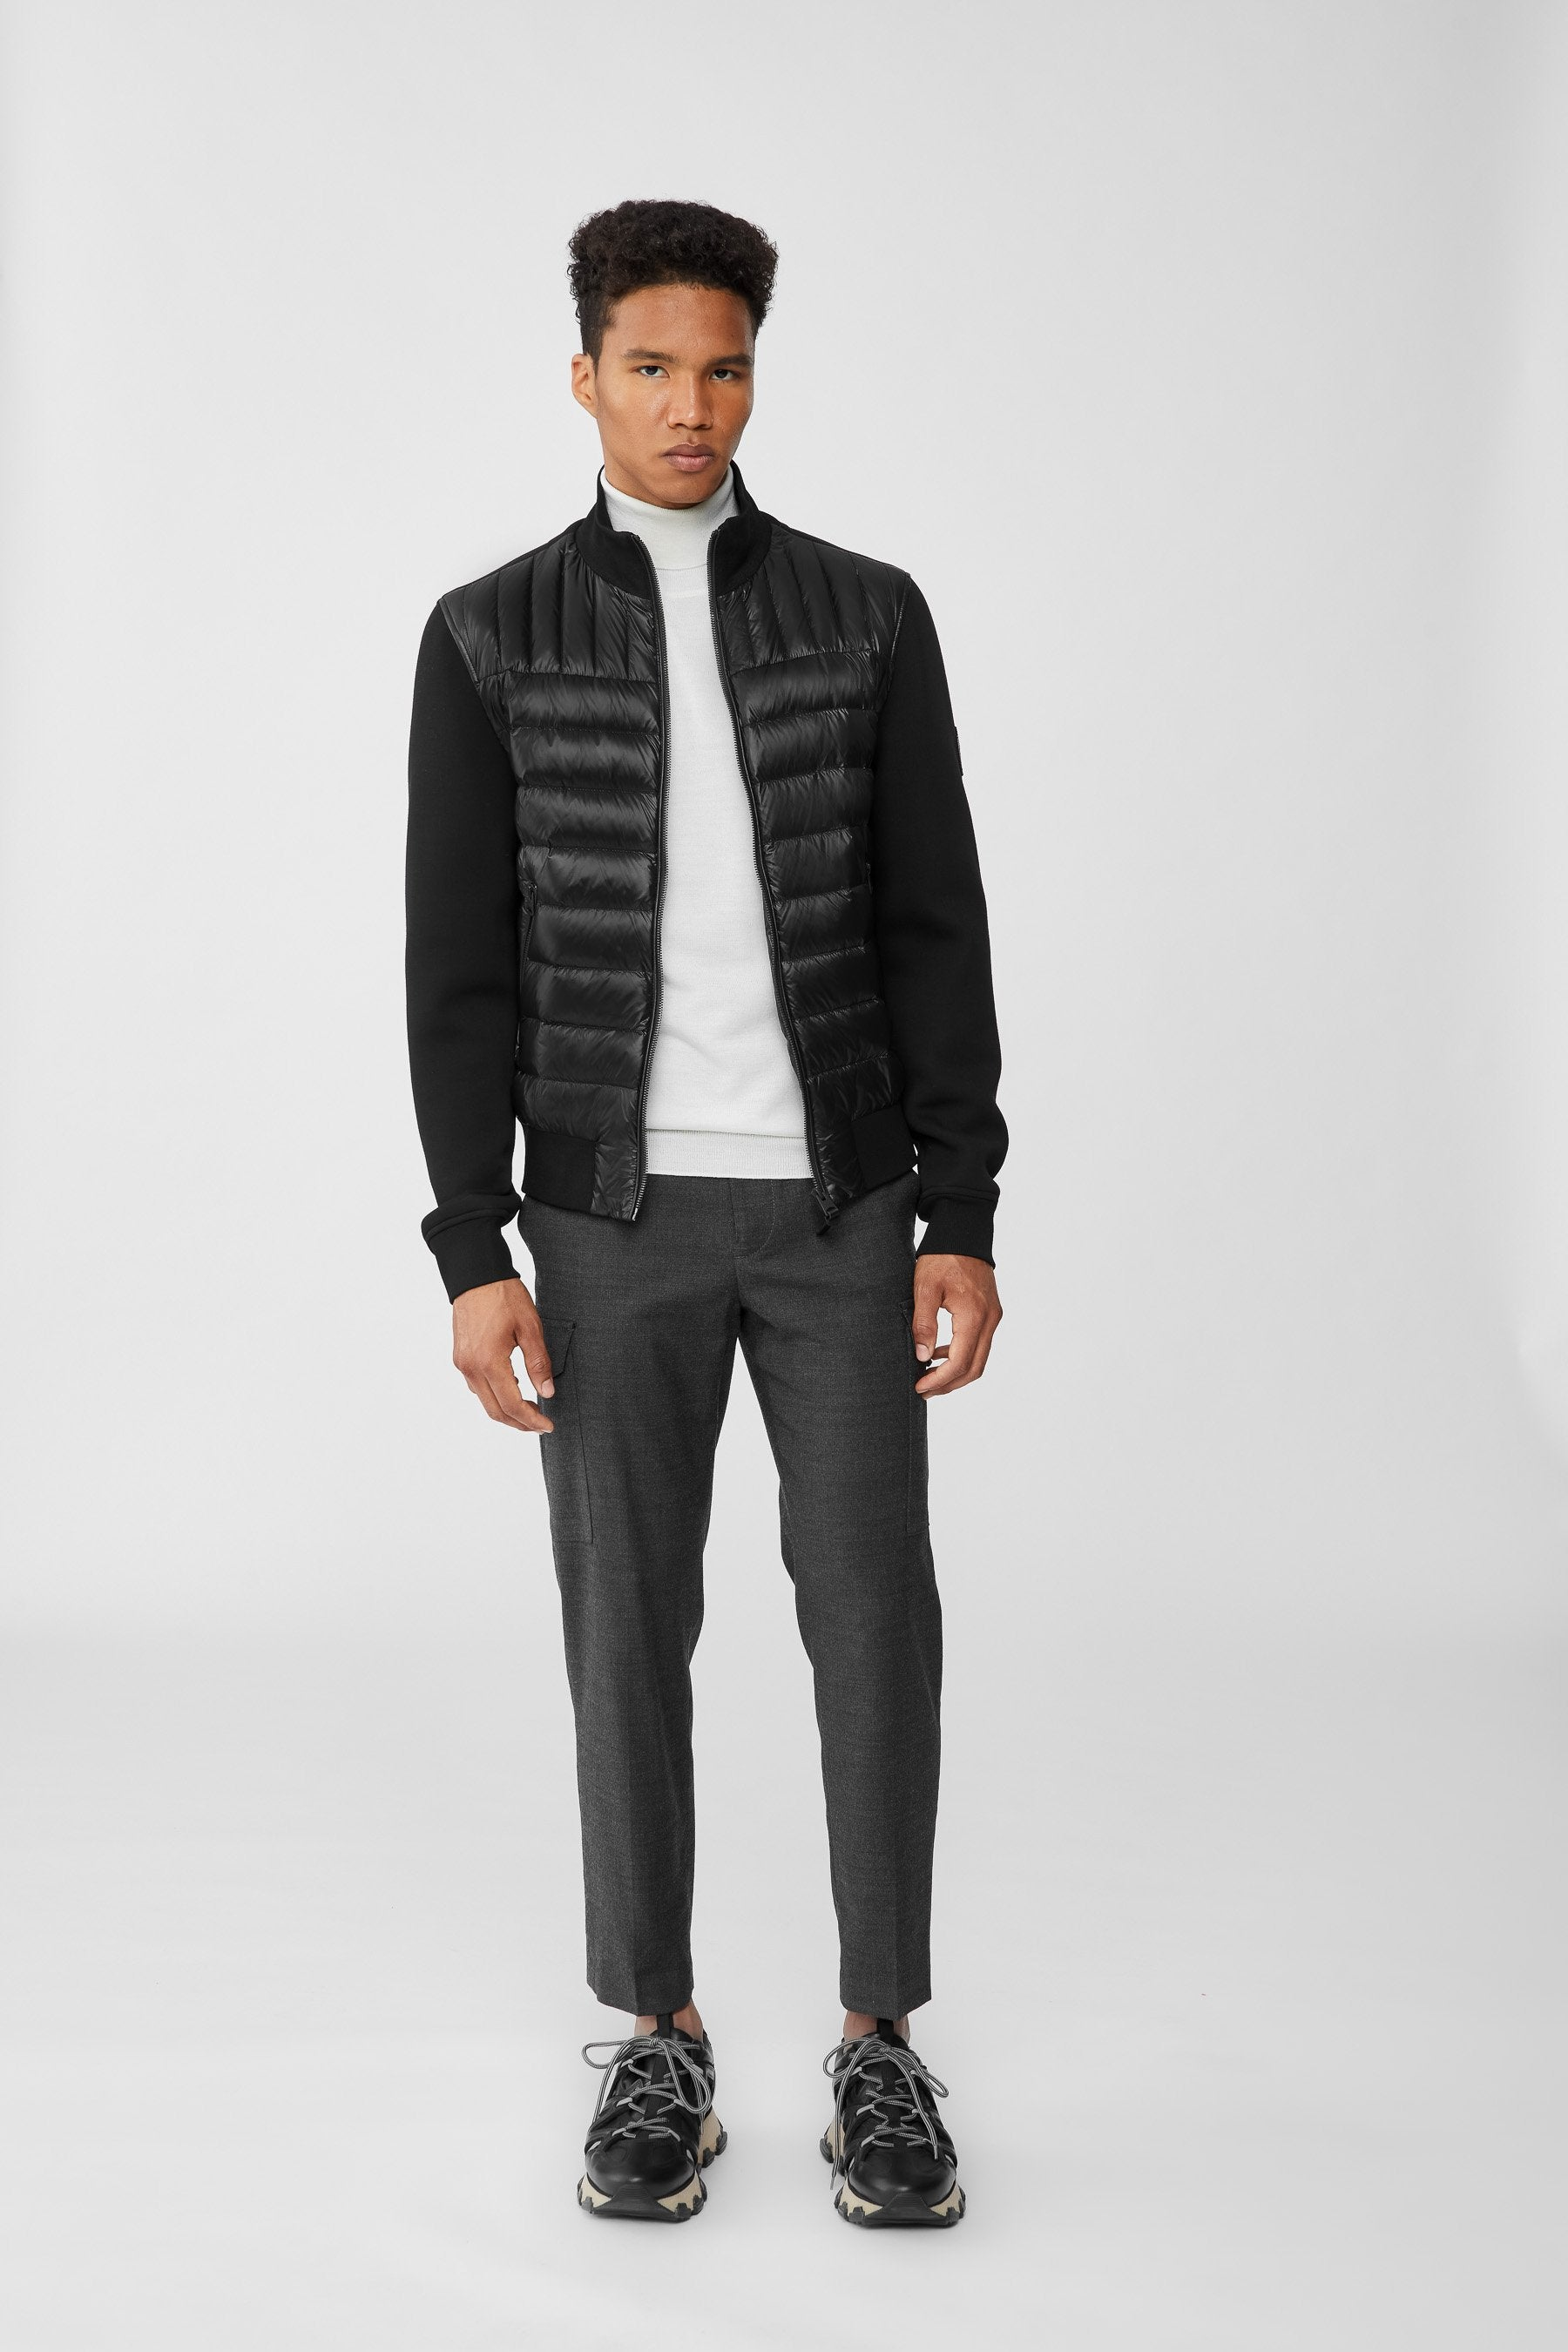 Mackage Collin Men's Lightweight Down Bomber